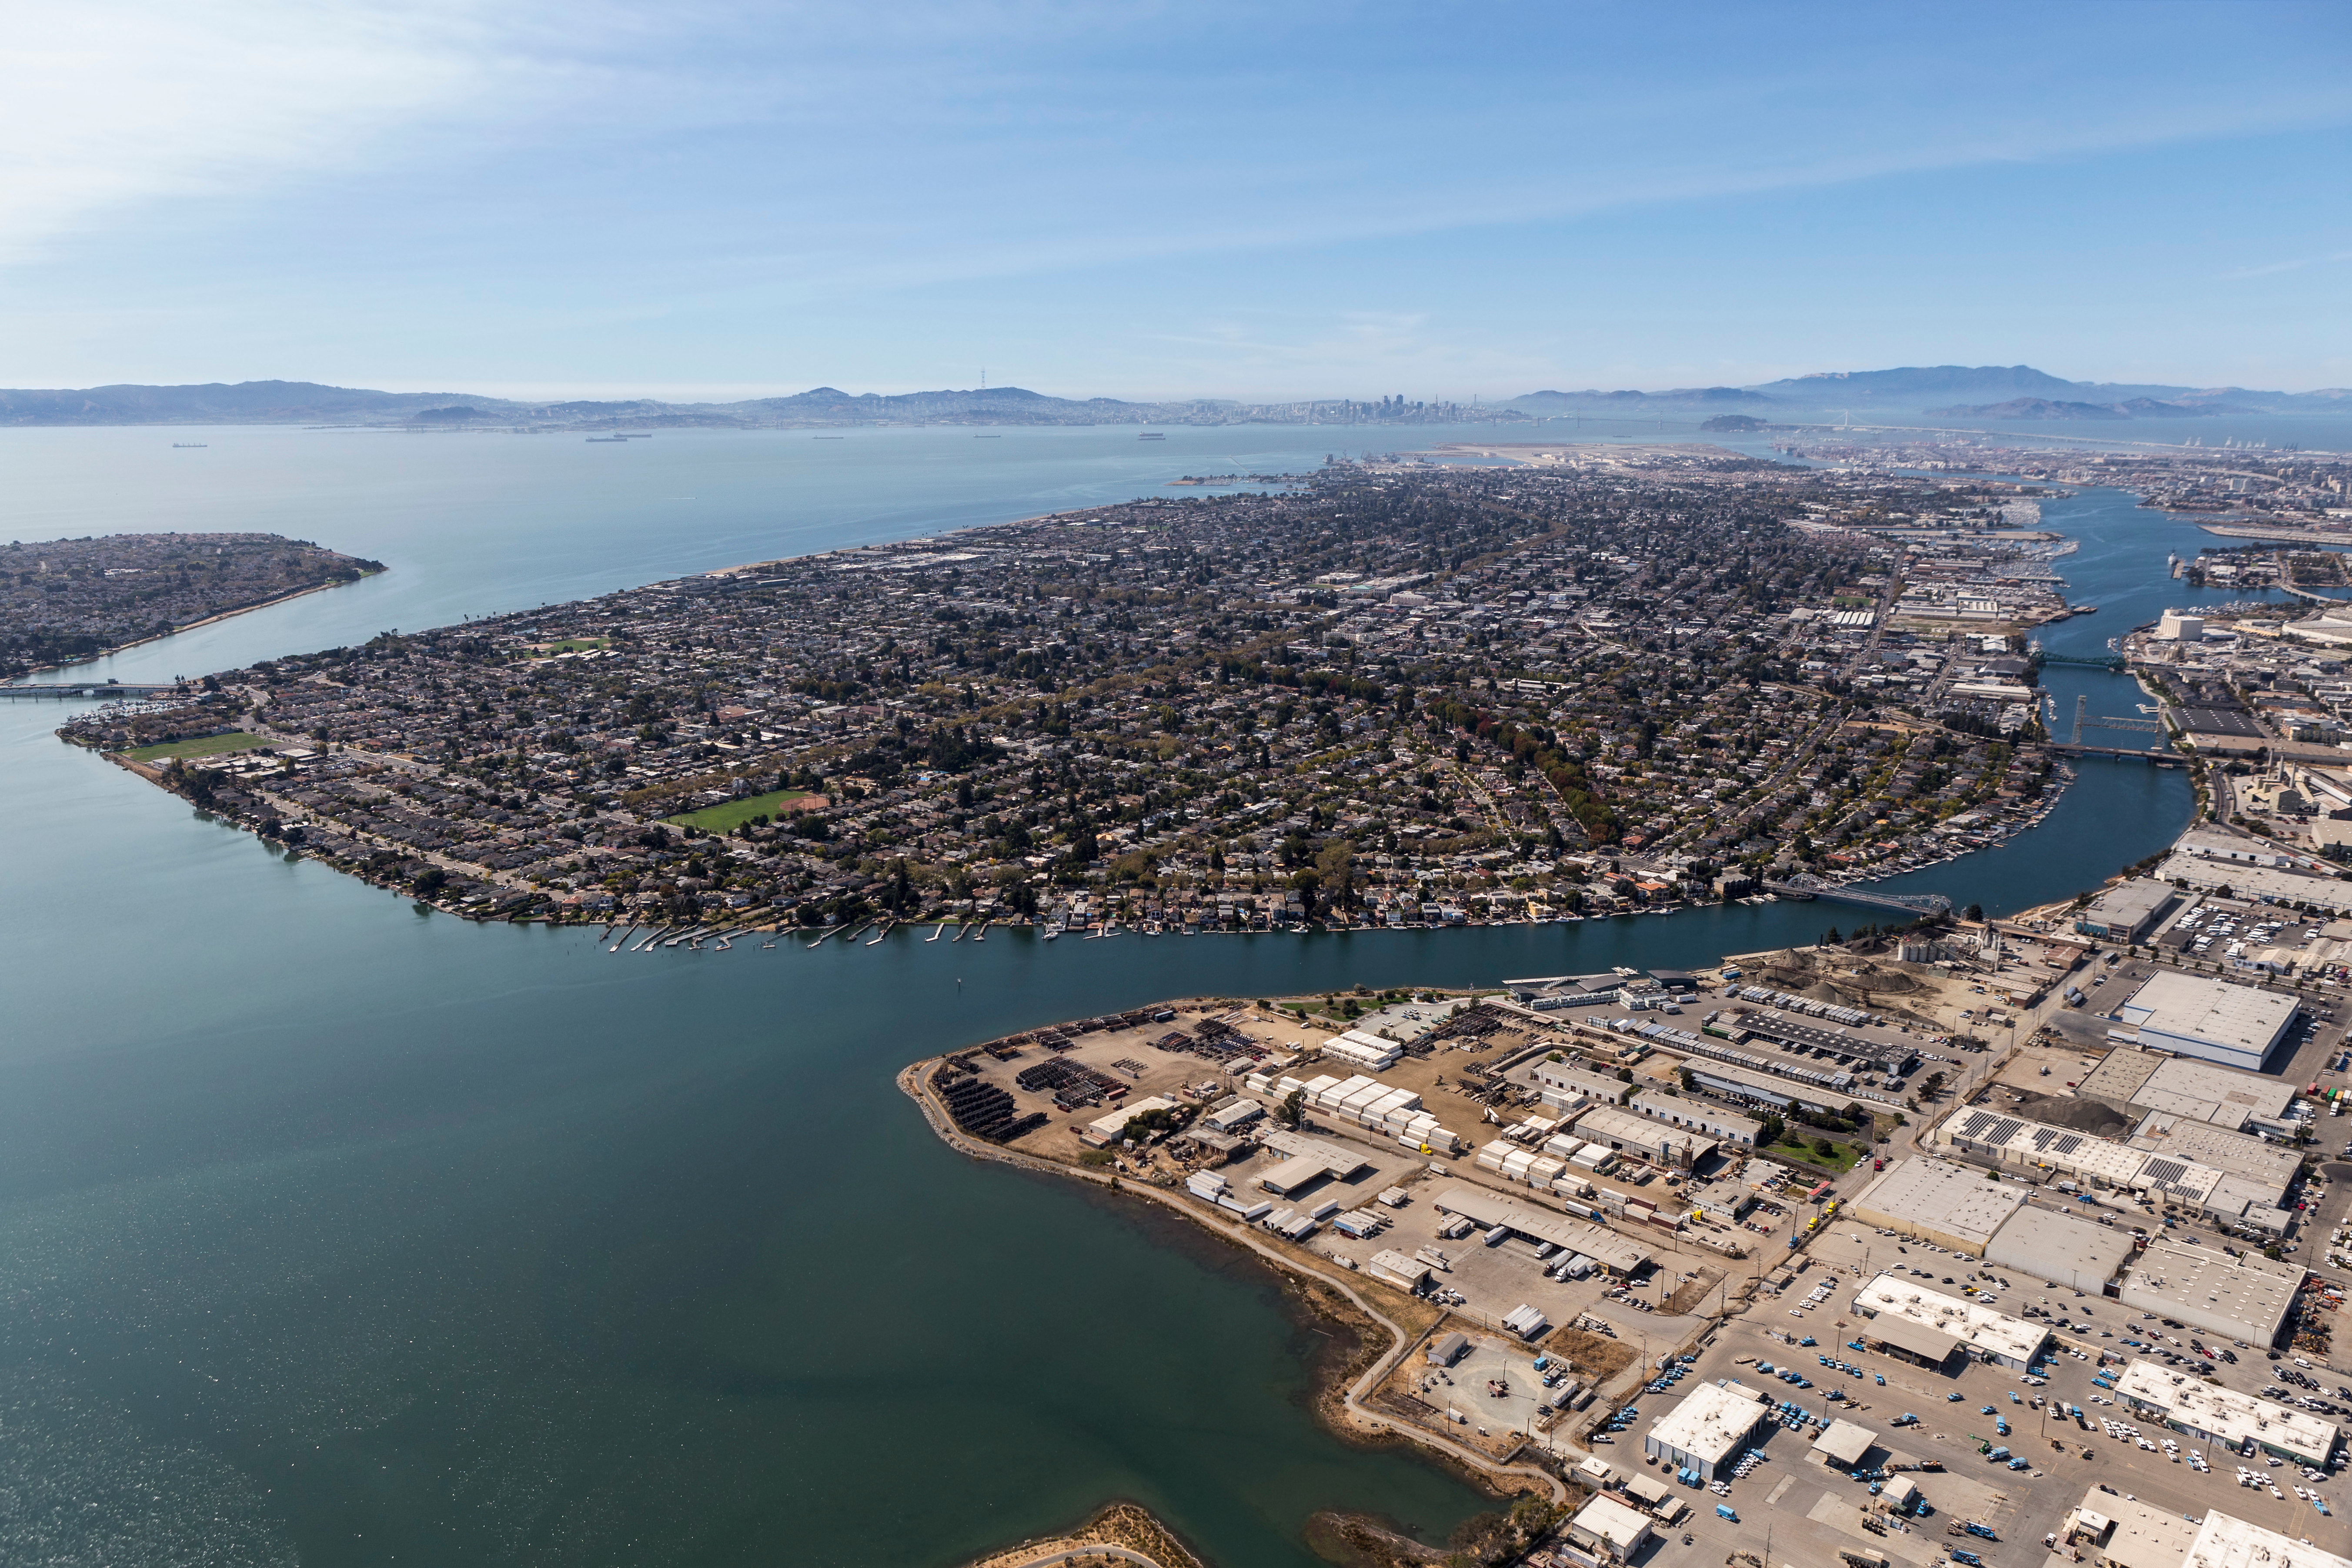 Aerial view of Alameda Island during a sunny day, with Oakland to the right.